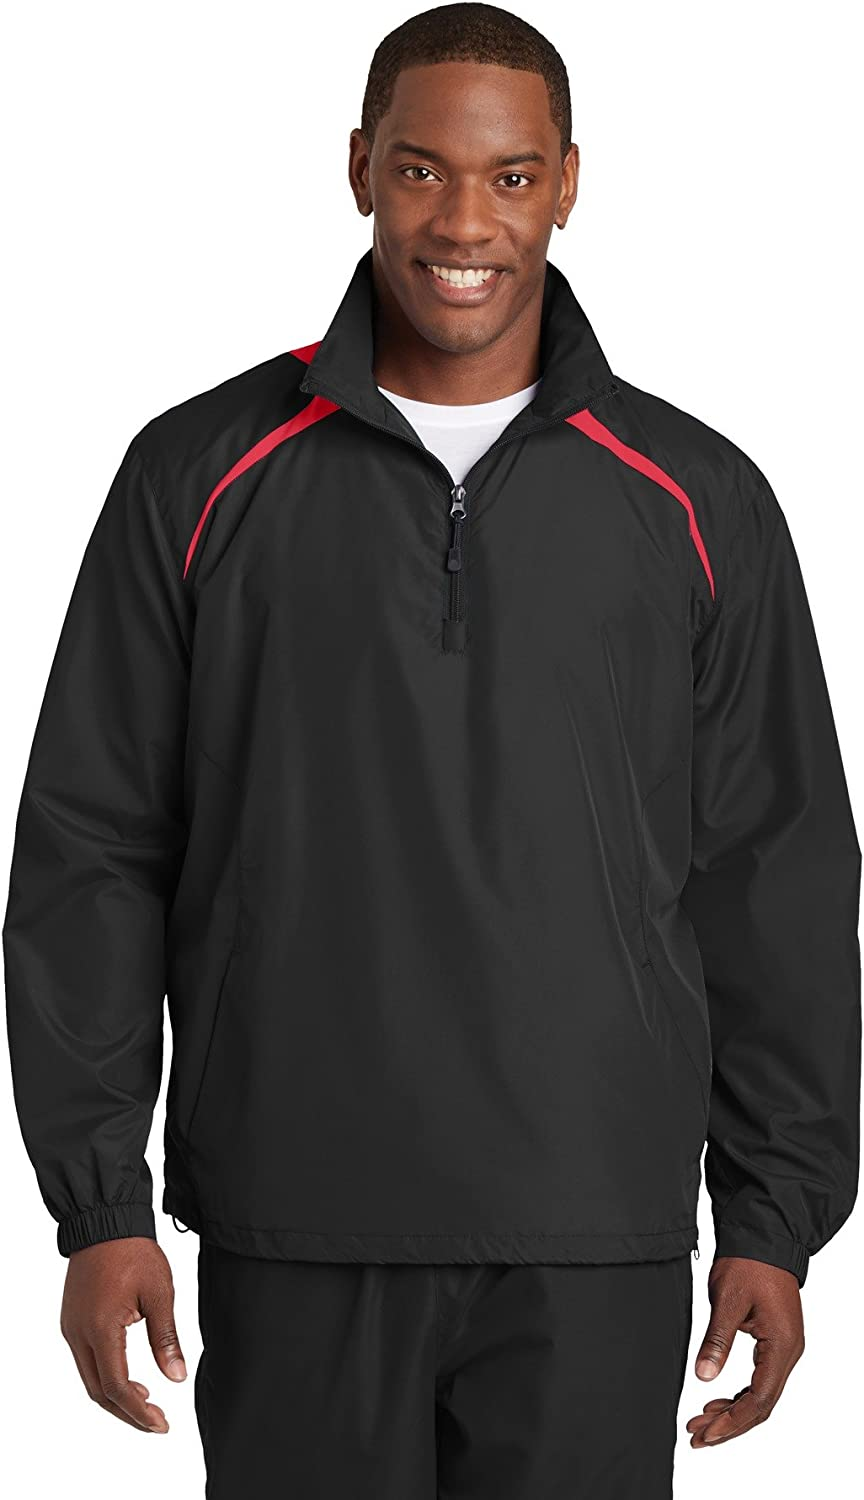 Big Mens 1 2Zip Wind Shirt by SportTek  Medium ( Black True Red )